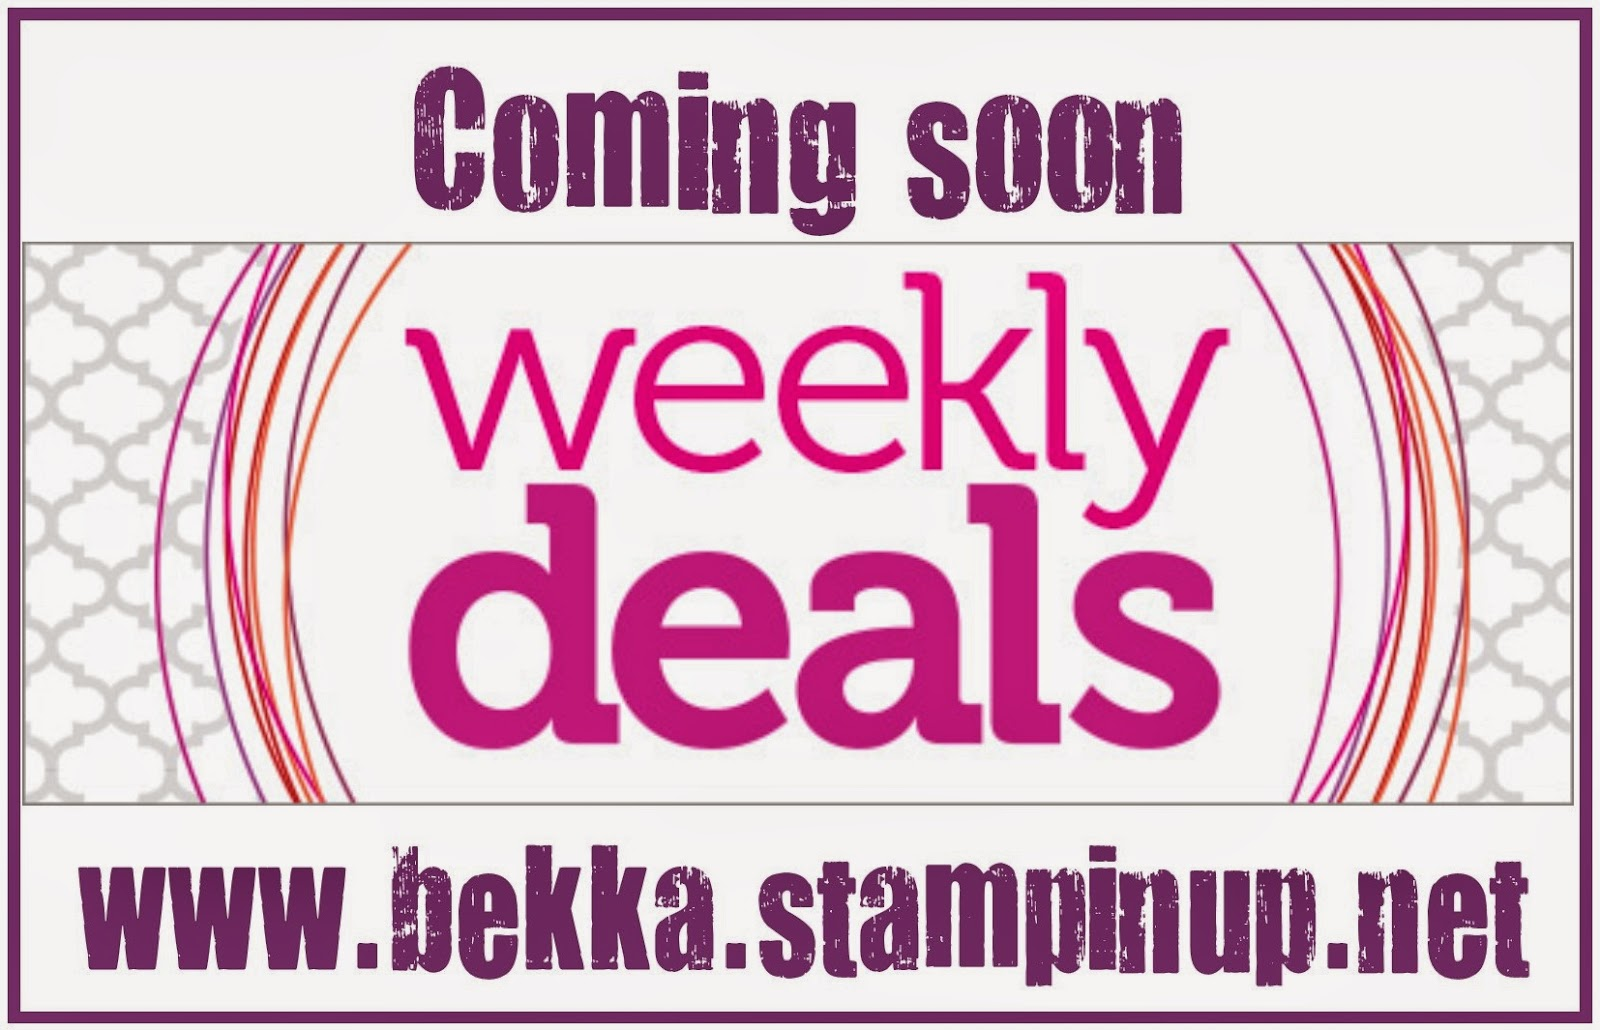 April Weekly Deals from Stampin' Up! UK available from www.bekka.stampinup.net - grab them while you can!